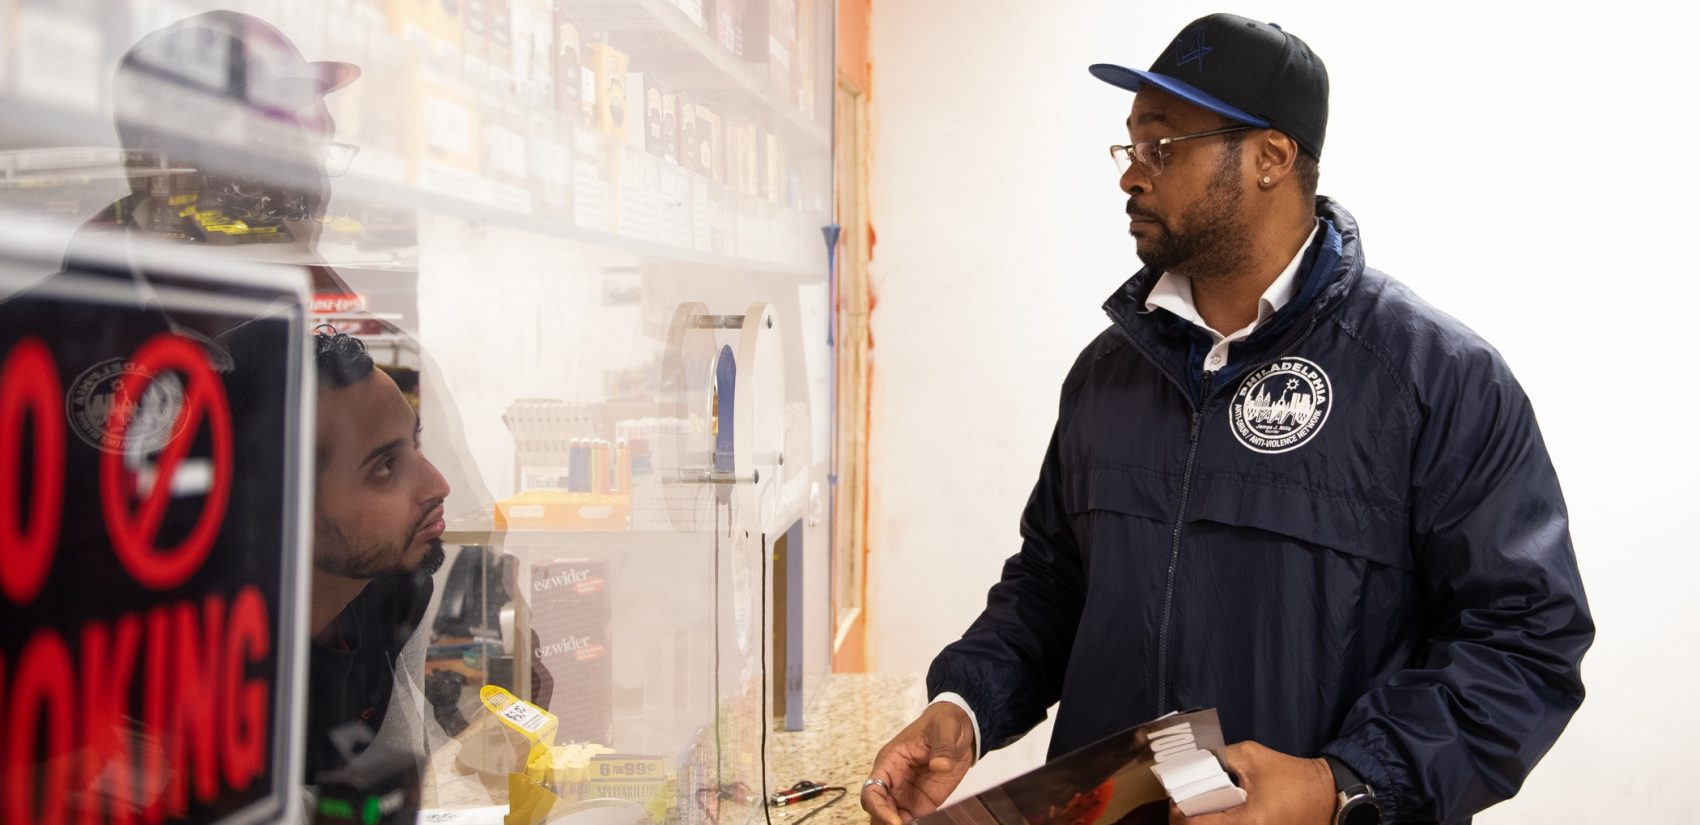 Tarik Harris talks to Sam, who's working the counter at the Logan Food Mini Market, about how CCIP can help businesses who are experiencing concerns of violence. (Kriston Jae Bethel for WHYY)